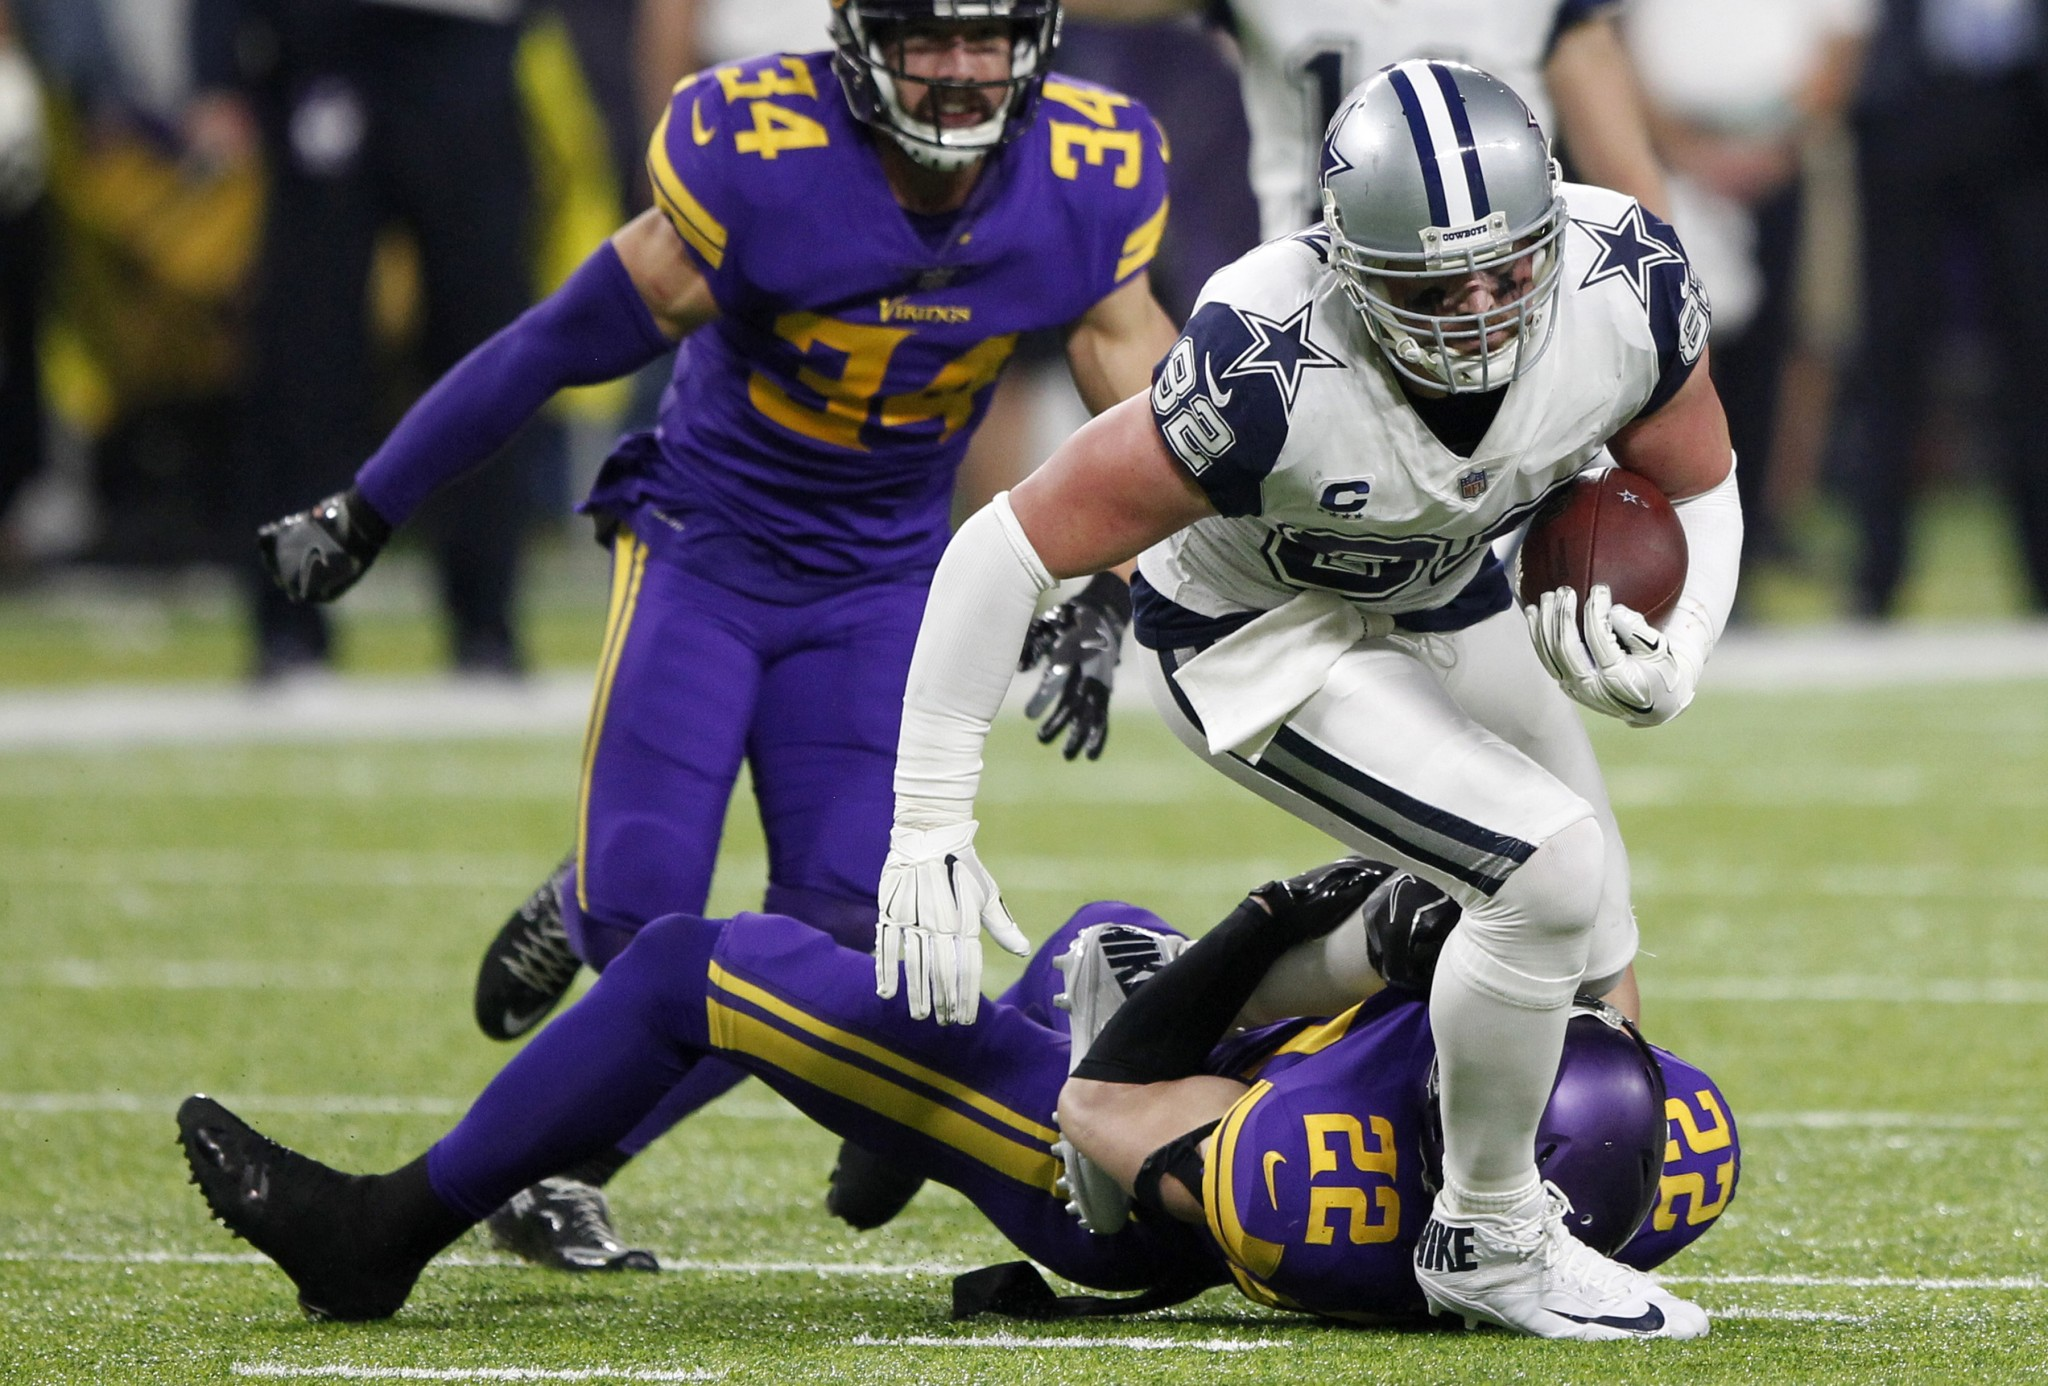 Jason Witten's receptions streak ends at 130 games after catch wiped out